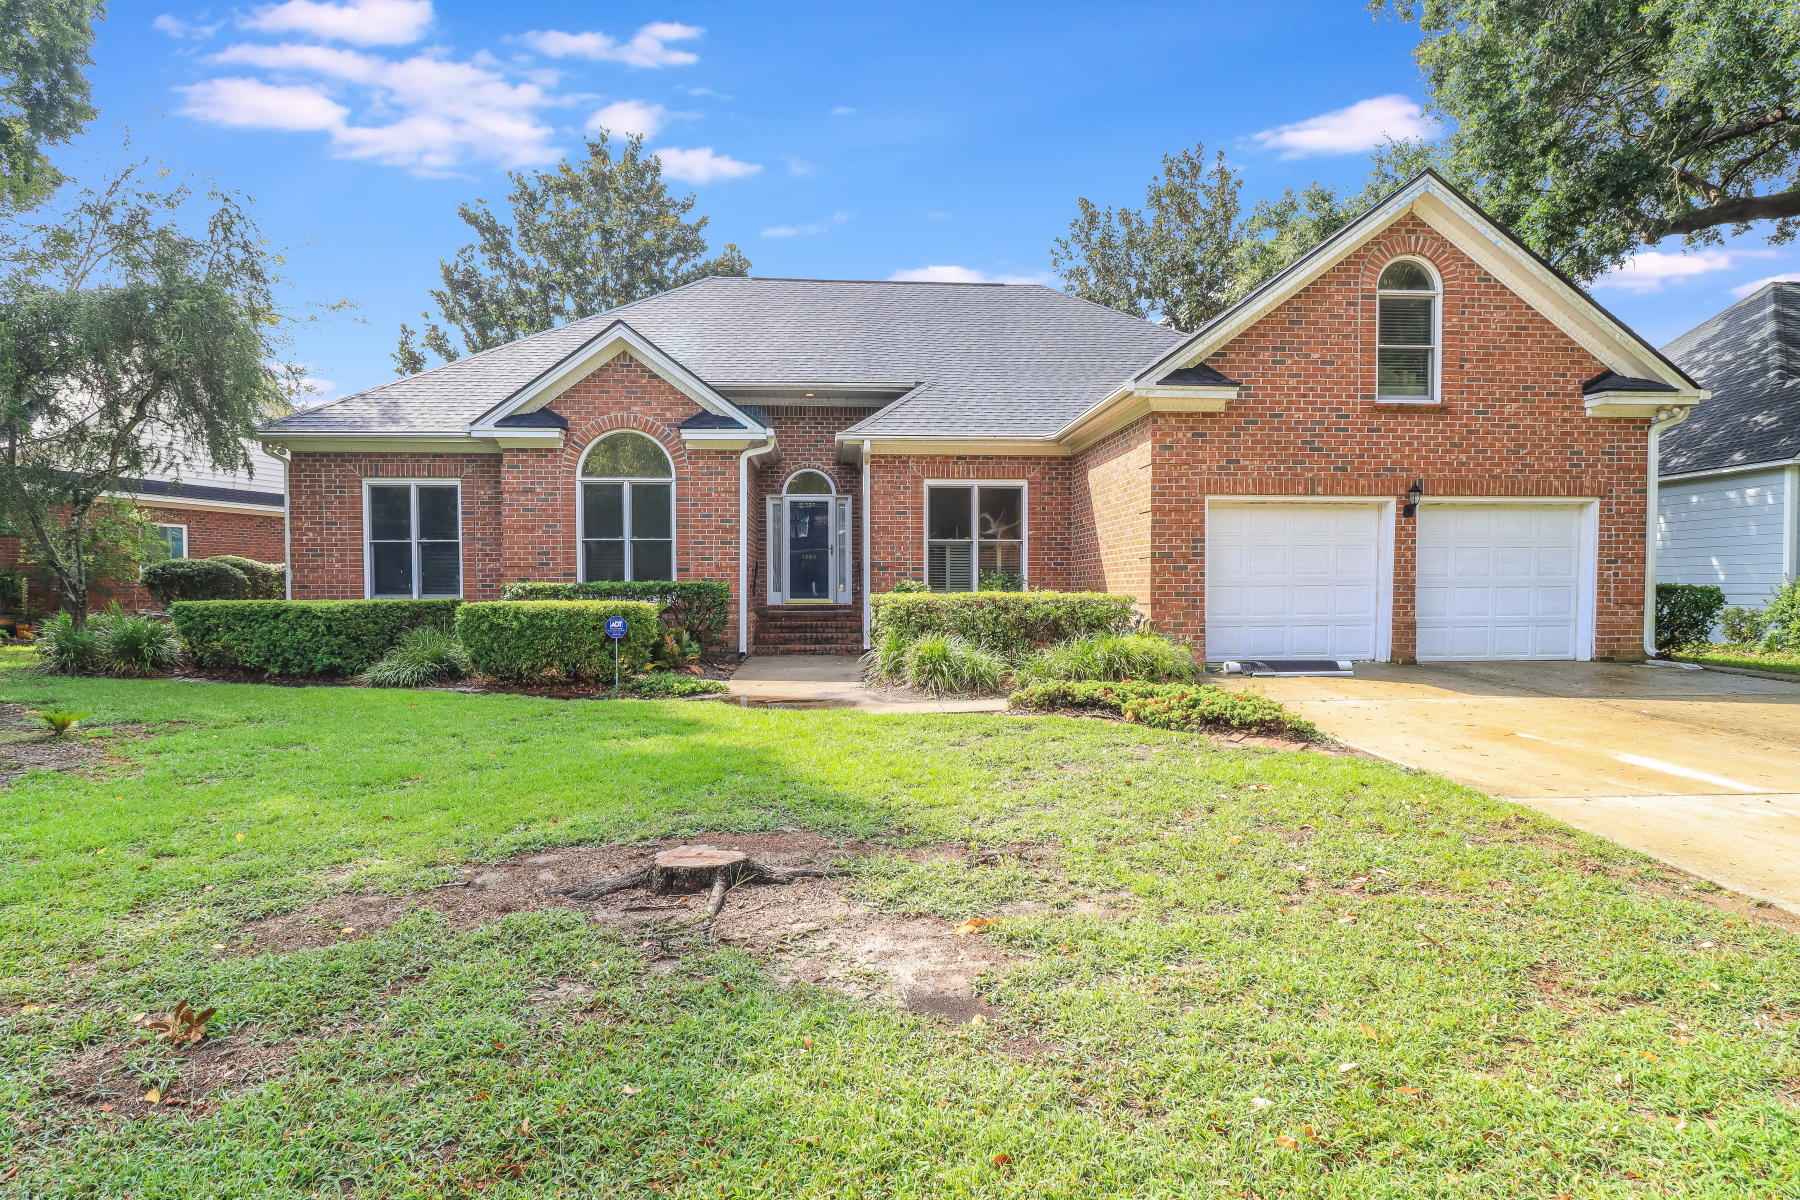 This beautiful brick home is ideally nestled on a canal that opens out to a 50-acre fresh water lake! Hidden Lakes is one of the most desired neighborhoods in the area and offers a community pool, clubhouse, tennis courts and a play park. Kayak, canoe or paddleboat to the lake's gazebo from your very own NEW private dock. Outside, this home also has a relaxing NEW rear deck and a brand NEW ROOF! Inside, the floor plan offers tons of space with 5 bedrooms, 3 full baths, 2 separate living spaces, plus a large bonus room over the garage. Large windows matched with high ceilings throughout the home bring the wonderful water views in and create an open and airy ambiance. On the first floor, the well-planned layout offers two bedrooms that share a full bath, as well as an expansive master suite. This space boasts a tray ceiling, a large walk-in closet, and a private bath with a double sink vanity, a garden tub, and a separate shower. The second floor consists of two bedrooms, a full bath, and a bonus room, with a closet the size of a room, as well as additional storage space. Hidden Lakes has so many wonderful features including neighborhood irrigation which allows you to water your yard at no additional cost, and even boat storage available for an extra fee. Tennis and basketball are included in the community area and you can even rent out the clubhouse for special events. Plus, this neighborhood is located just minutes from the Isle of Palms and across the street from the conveniences of Seaside Farms. The Towne Center, Sullivan's Island, Shem Creek, and so much more are just minutes away!